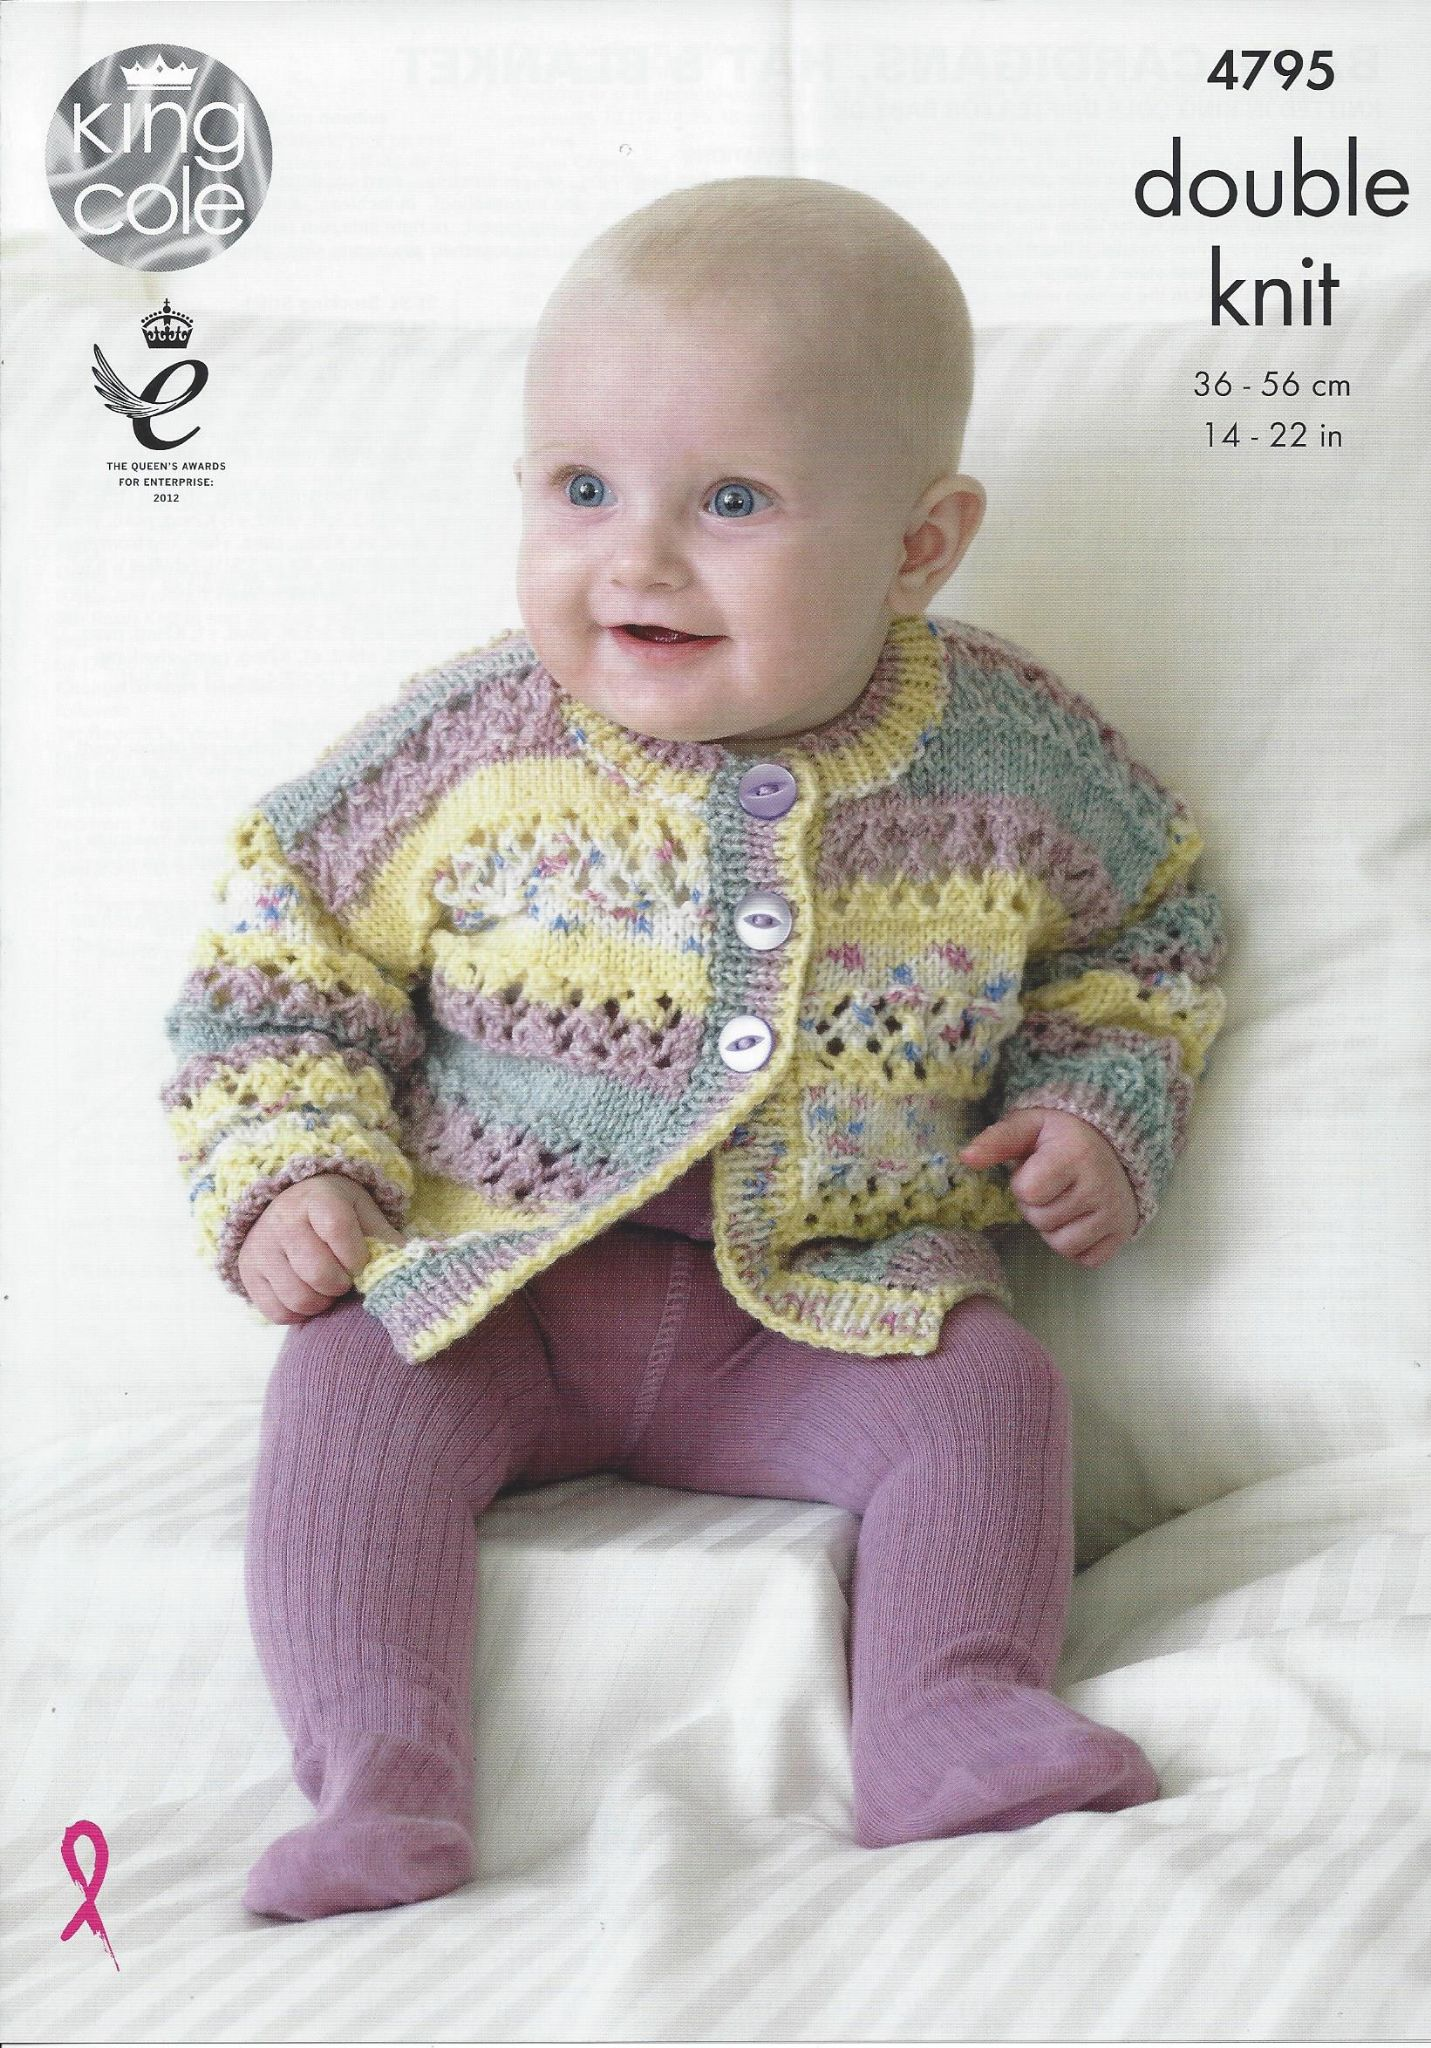 King cole baby drifter dk knitting pattern 4795 baby cardigans king cole baby drifter dk knitting pattern 4795 baby cardigans hat blanket bankloansurffo Image collections